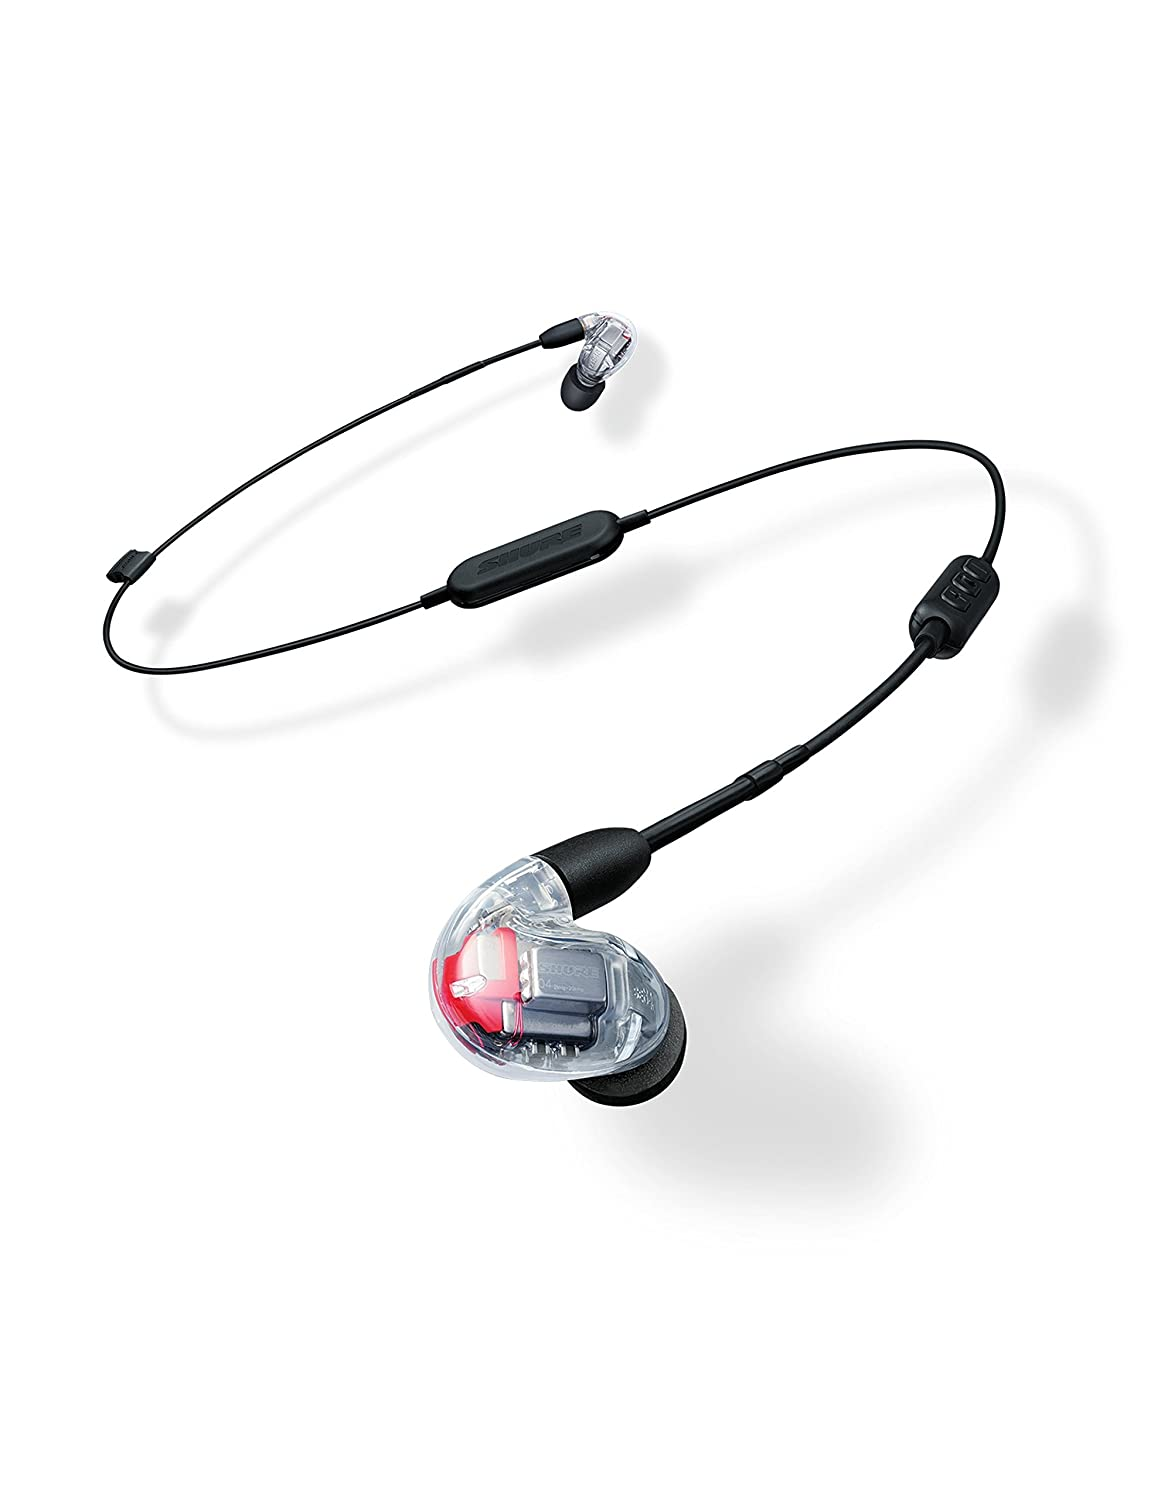 Shure SE846-CL BT1 Wireless Sound Isolating Earphones with Bluetooth Enabled Communication Cable, Clear